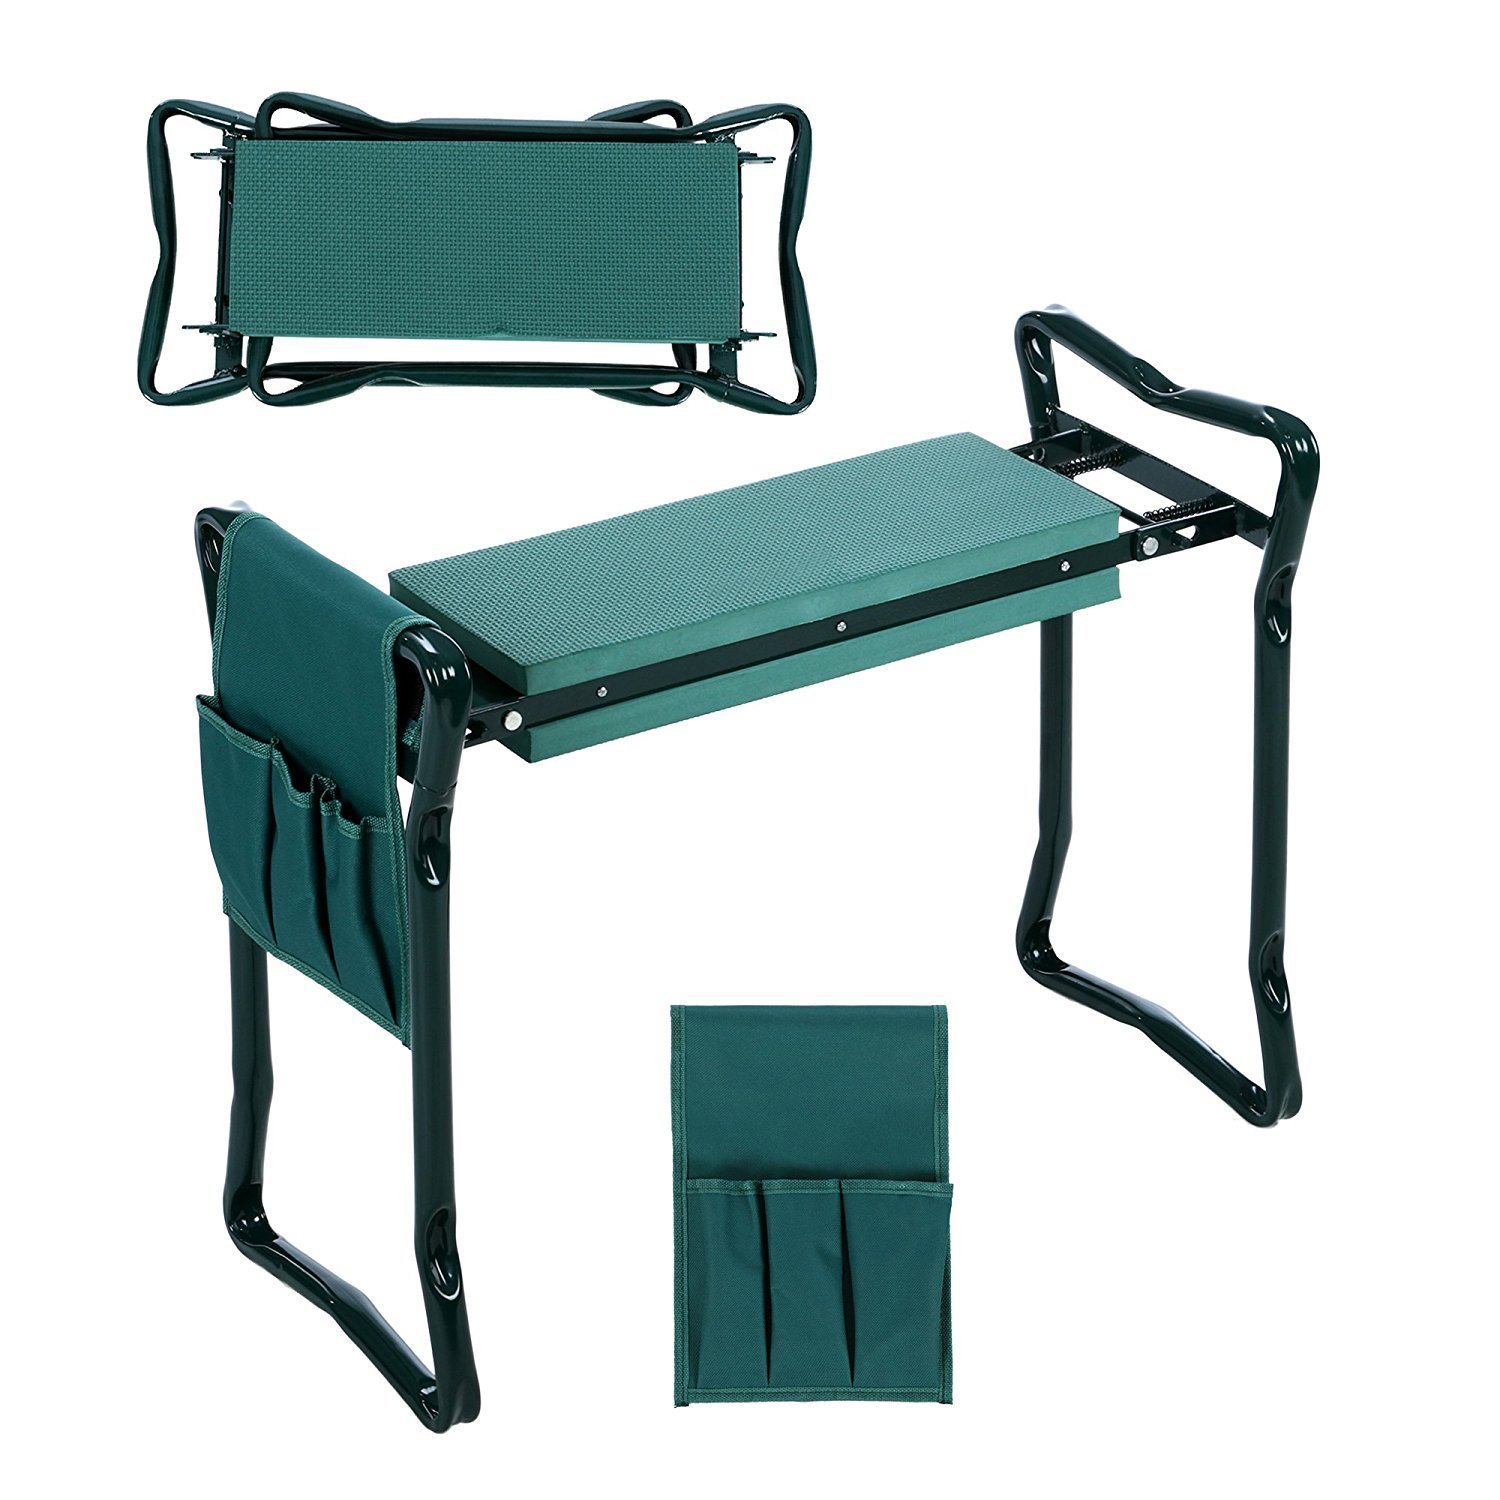 VIMOA Garden Kneeler Wave Pad and Folding Light Weight Steel Seat with Tool Pouch 2 in 1 Style